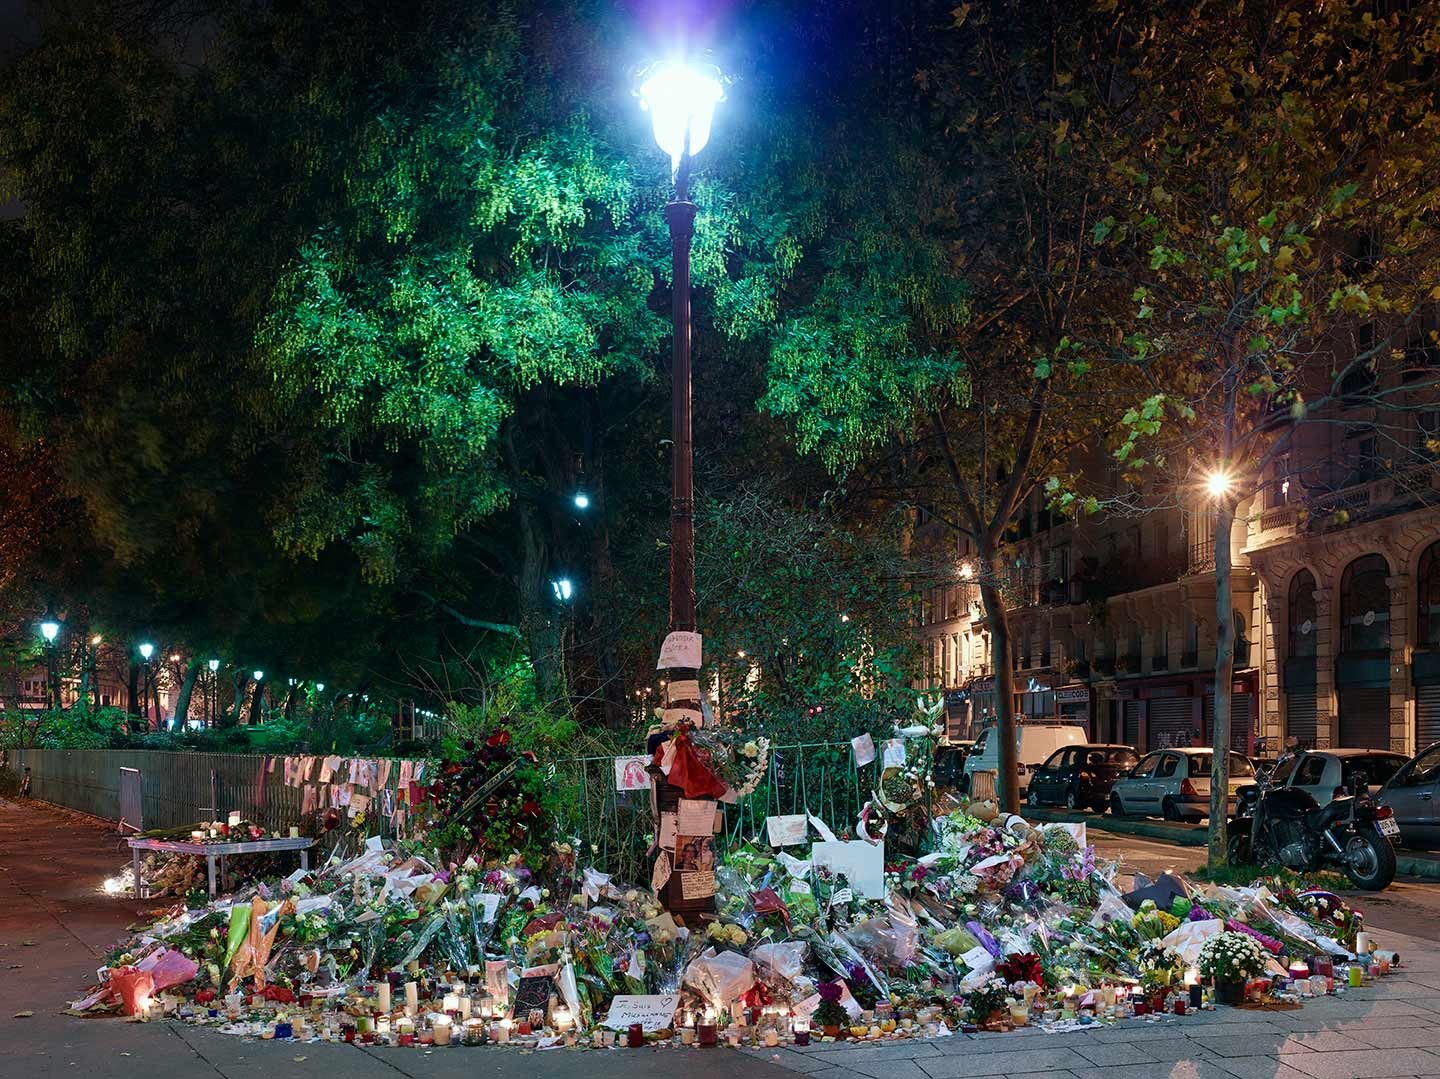 Capter la mémoire des attentats